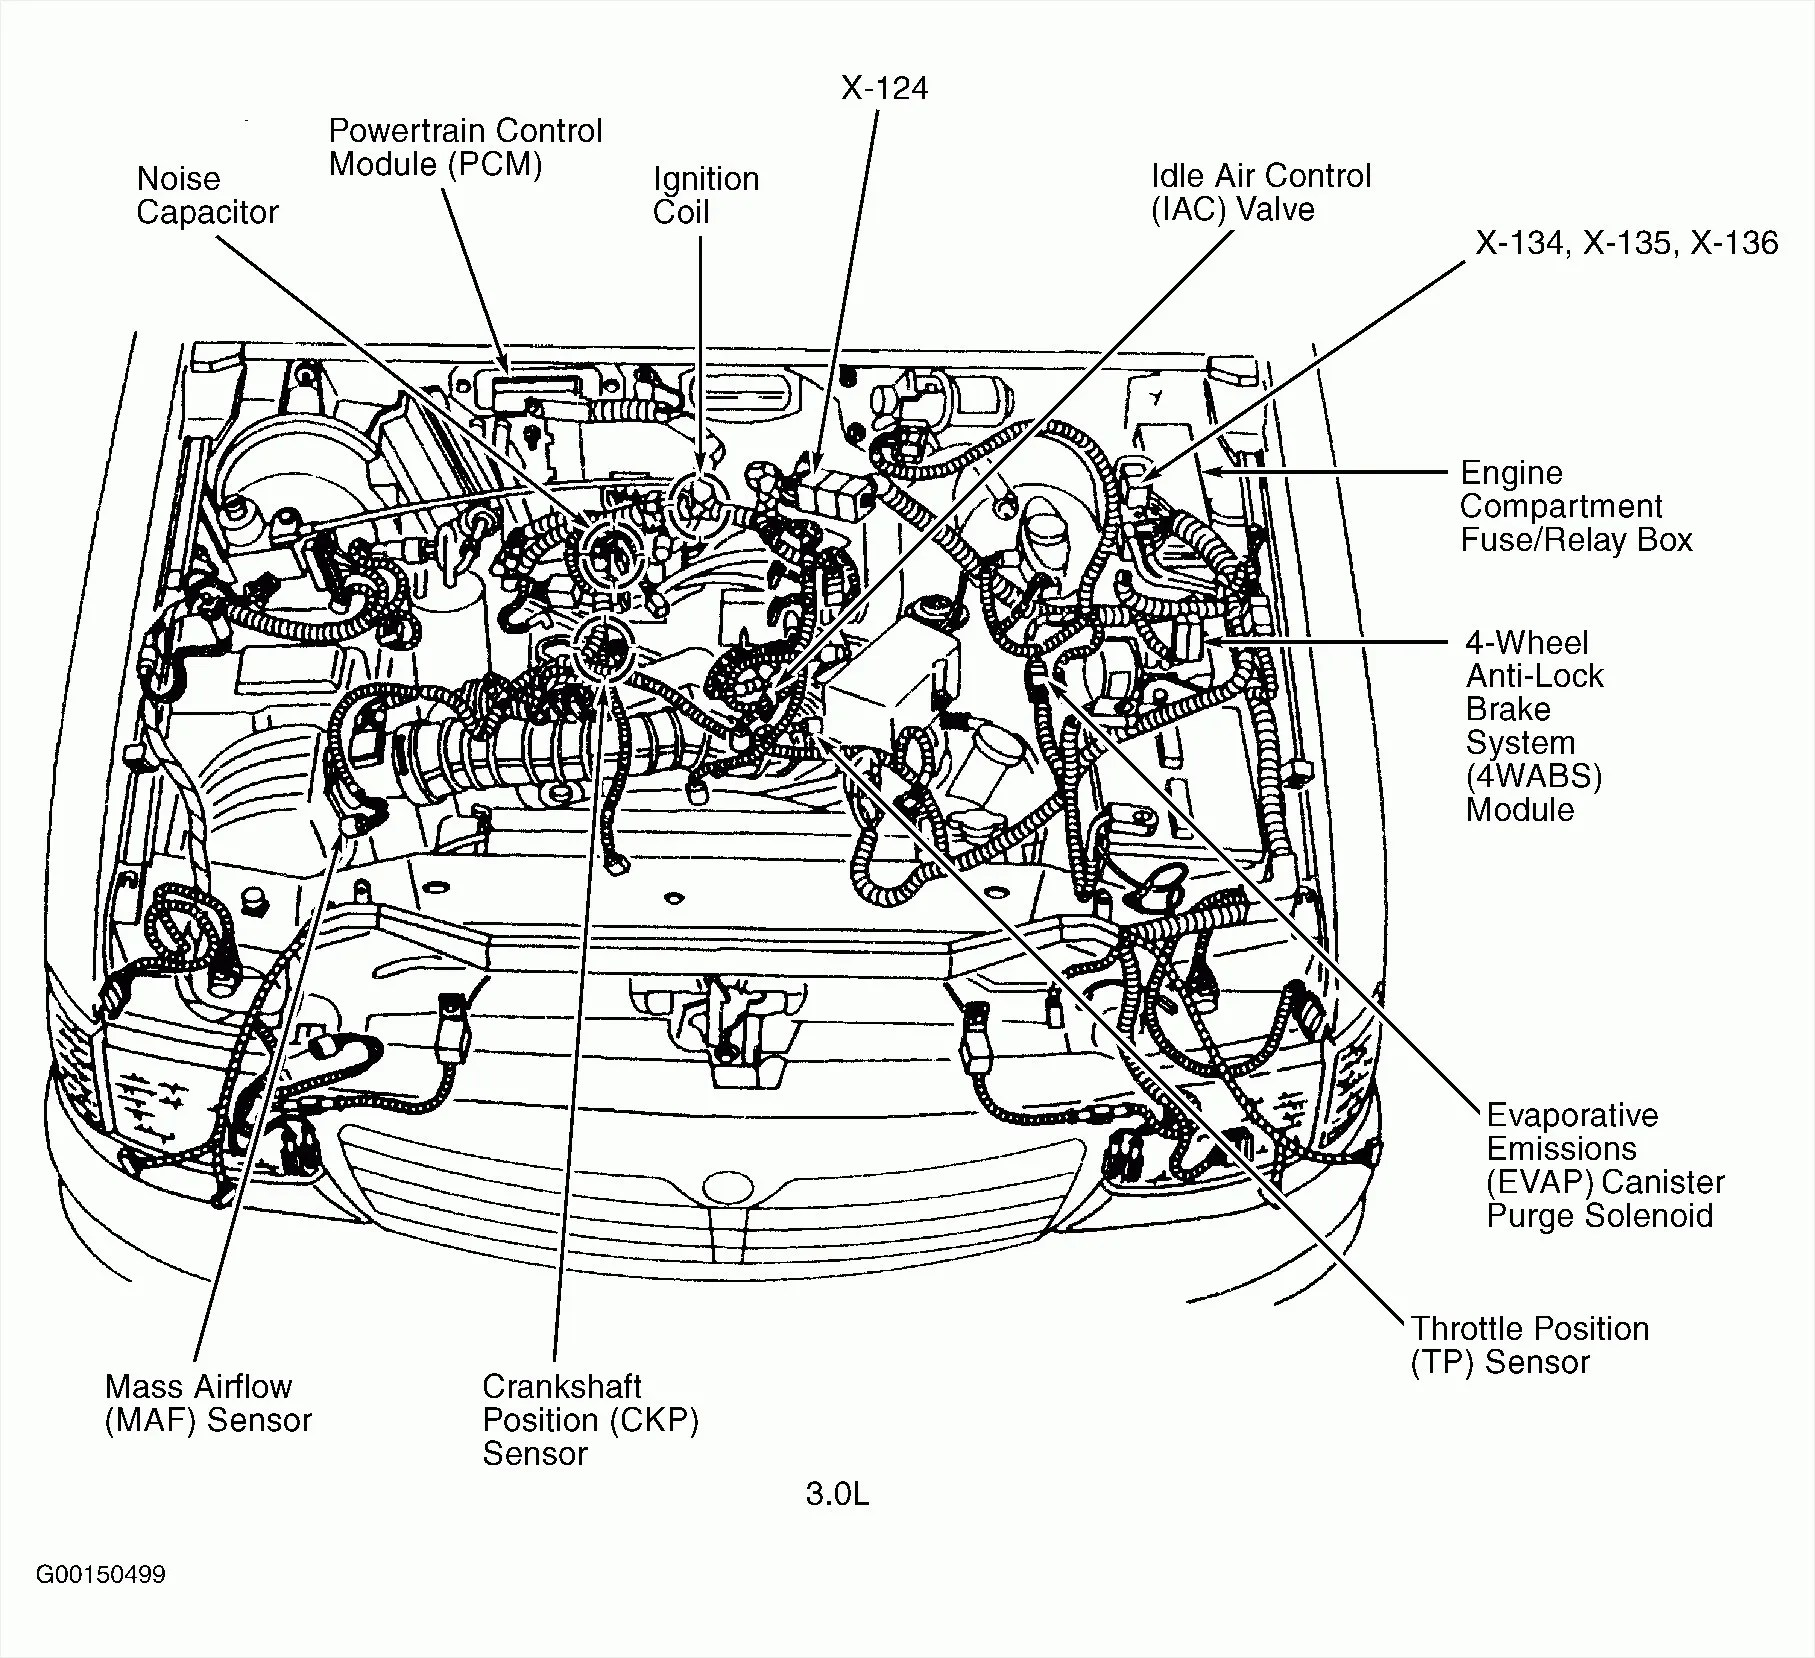 hight resolution of 1998 chevy cheyenne v6 vortec engine diagram wiring diagram toolbox1996 v6 vortec engine diagram wiring diagrams